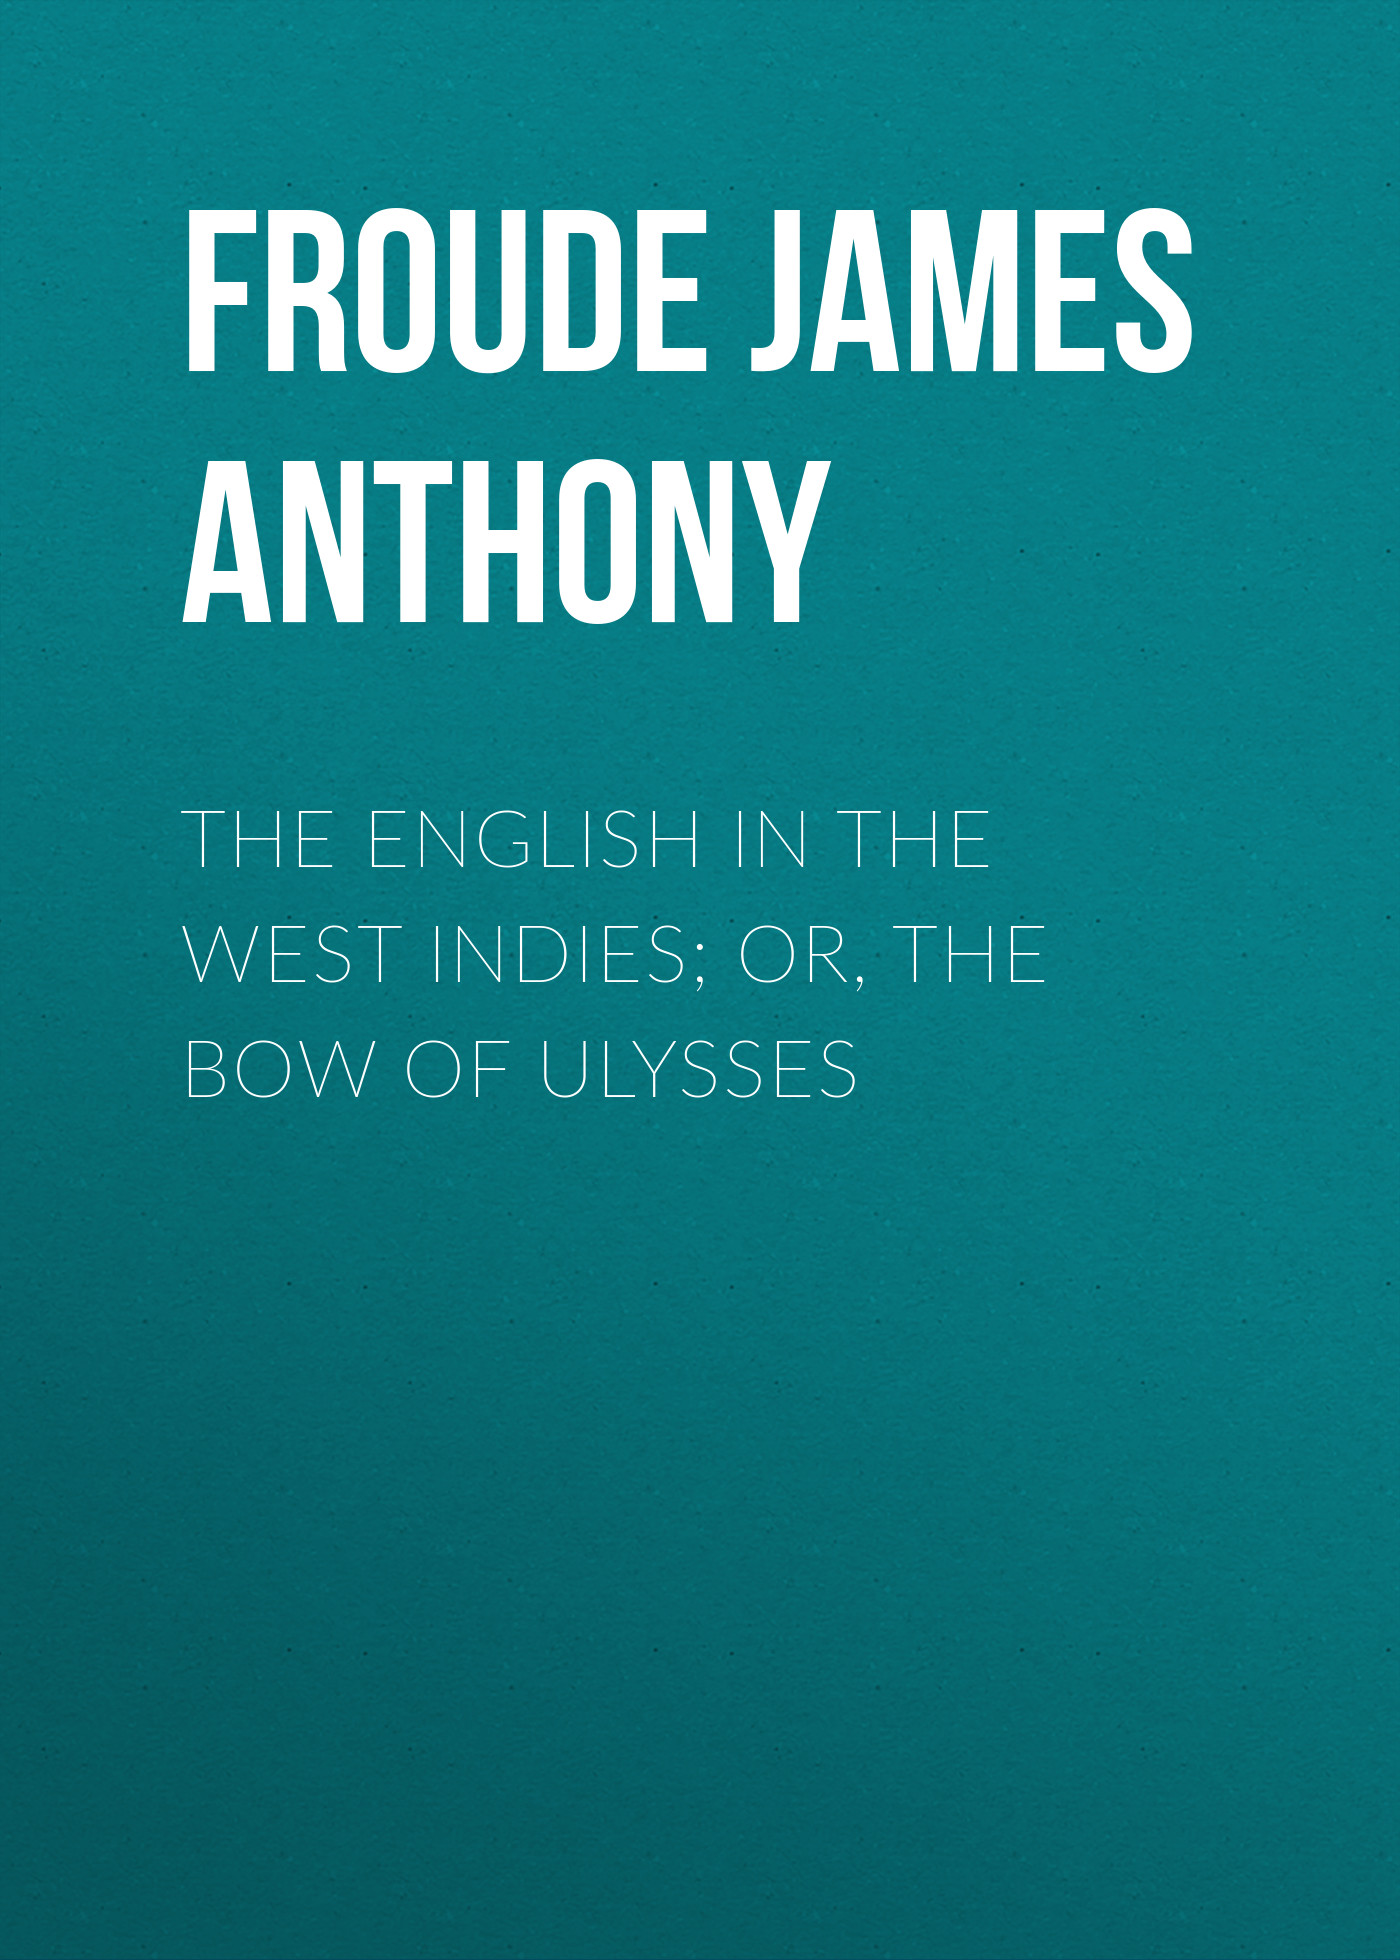 Froude James Anthony The English in the West Indies; Or, The Bow of Ulysses ulysses amazing adventures of